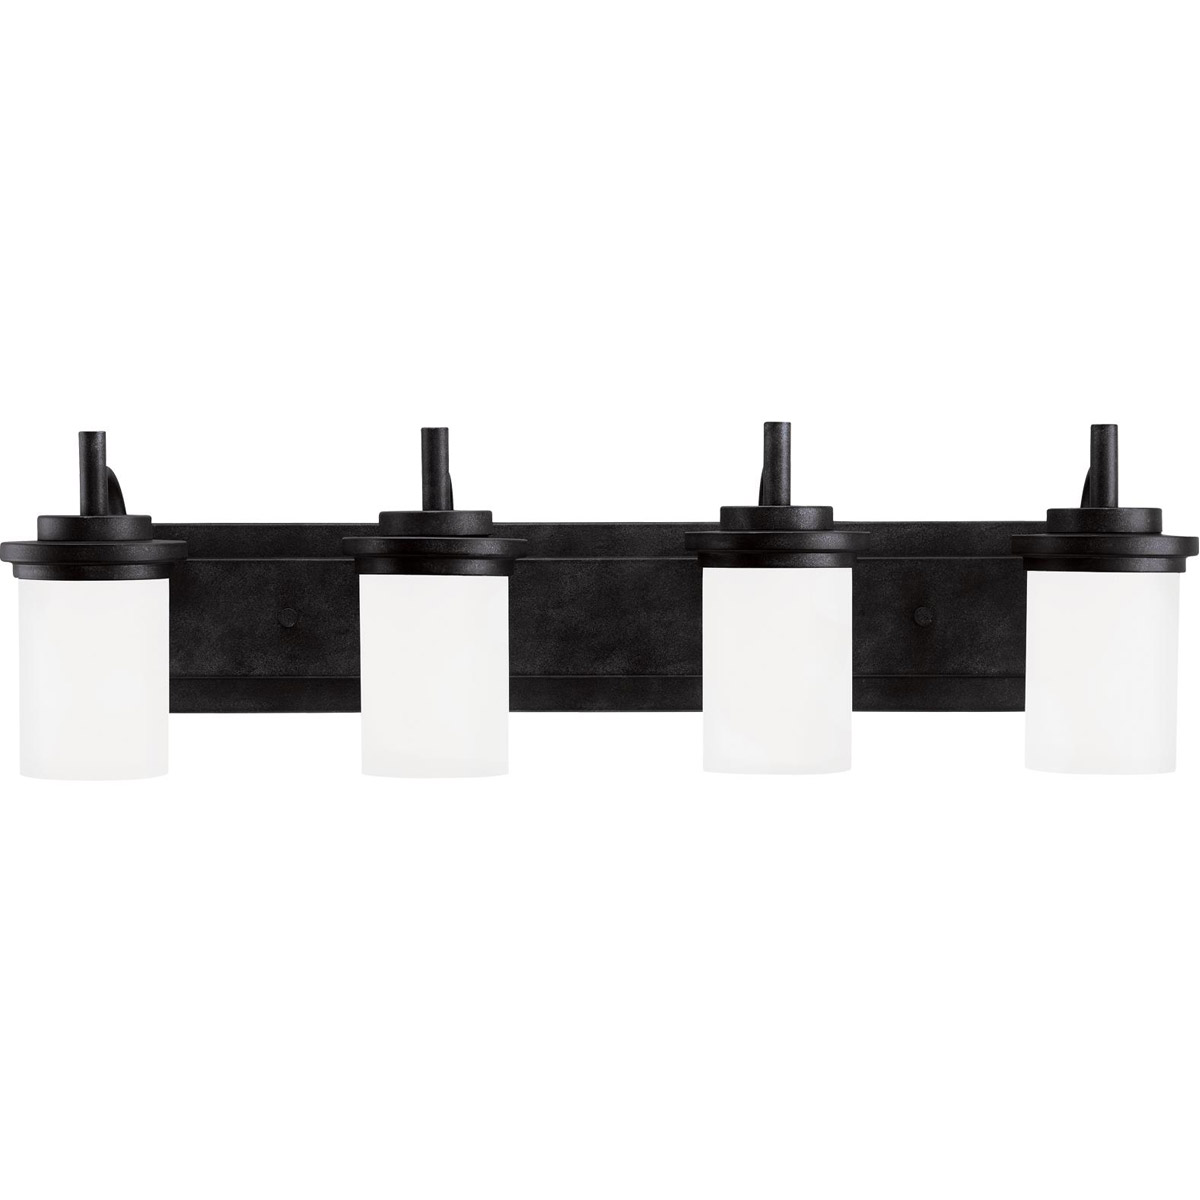 Sea Gull Lighting Winnetka 4 Light Bath Vanity in Blacksmith 44663-839 photo